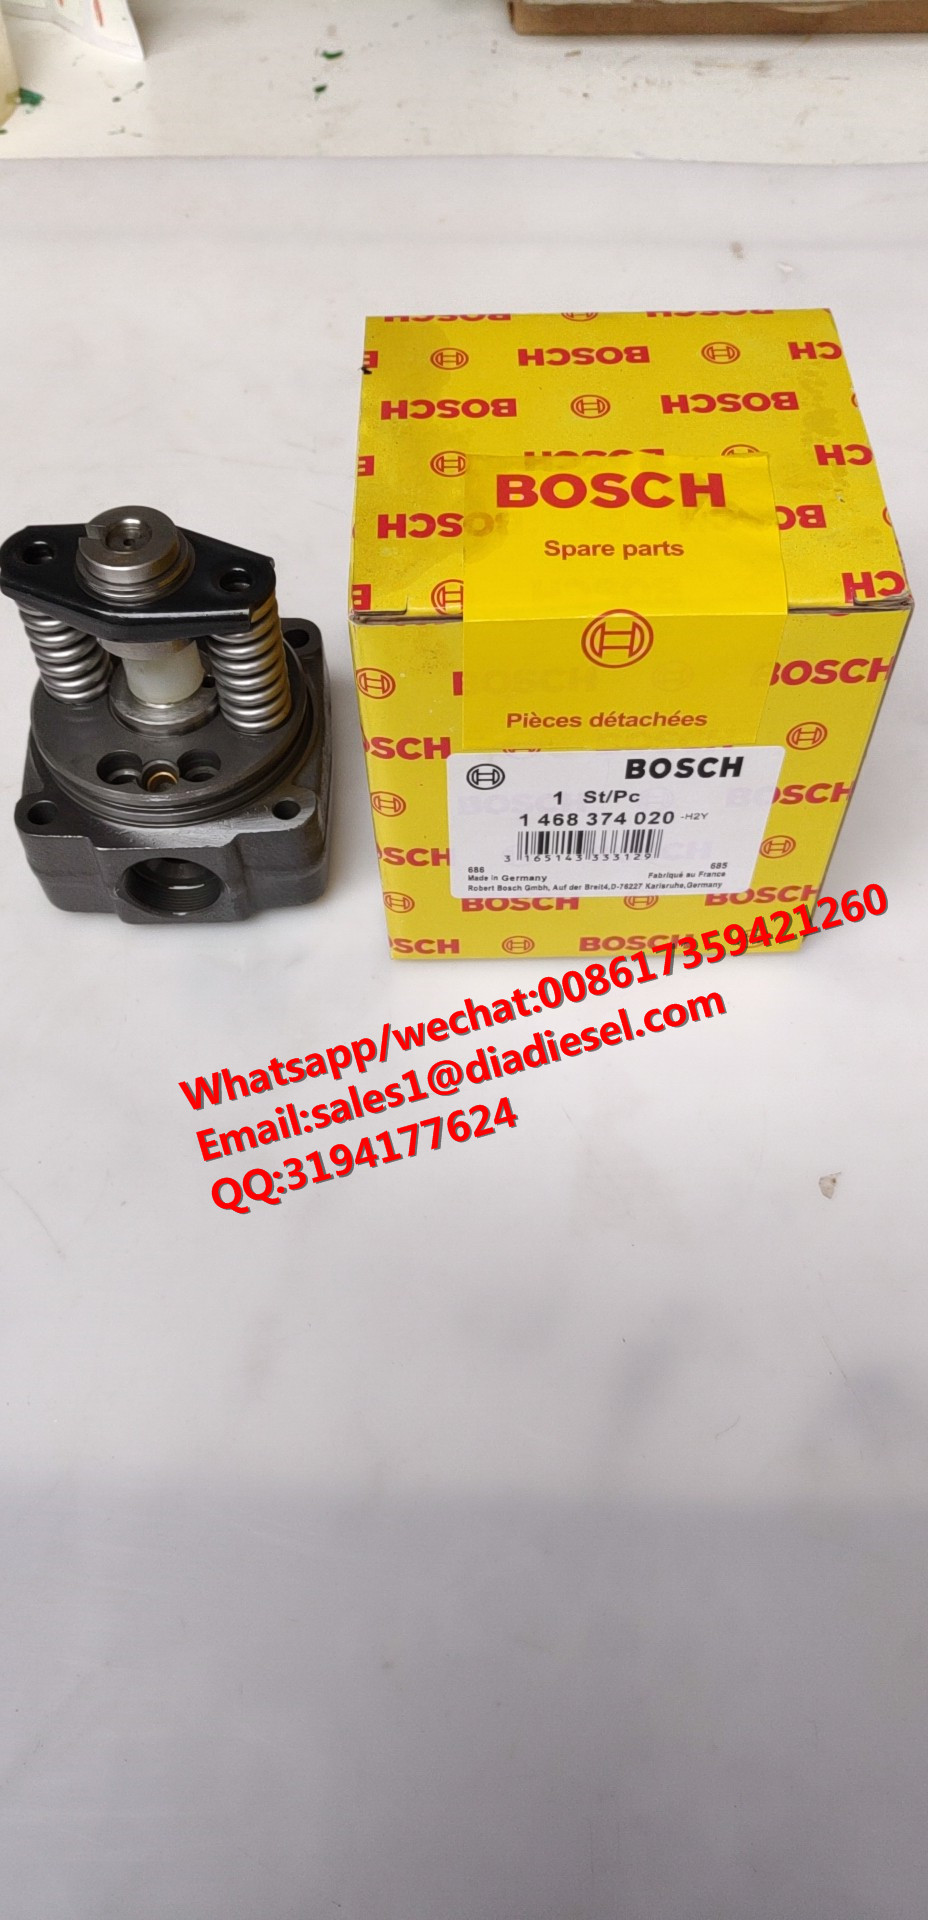 High quality CNDIP diesel fuel VE pump Head Rotor 1 468 374 020 4cylinder for sale